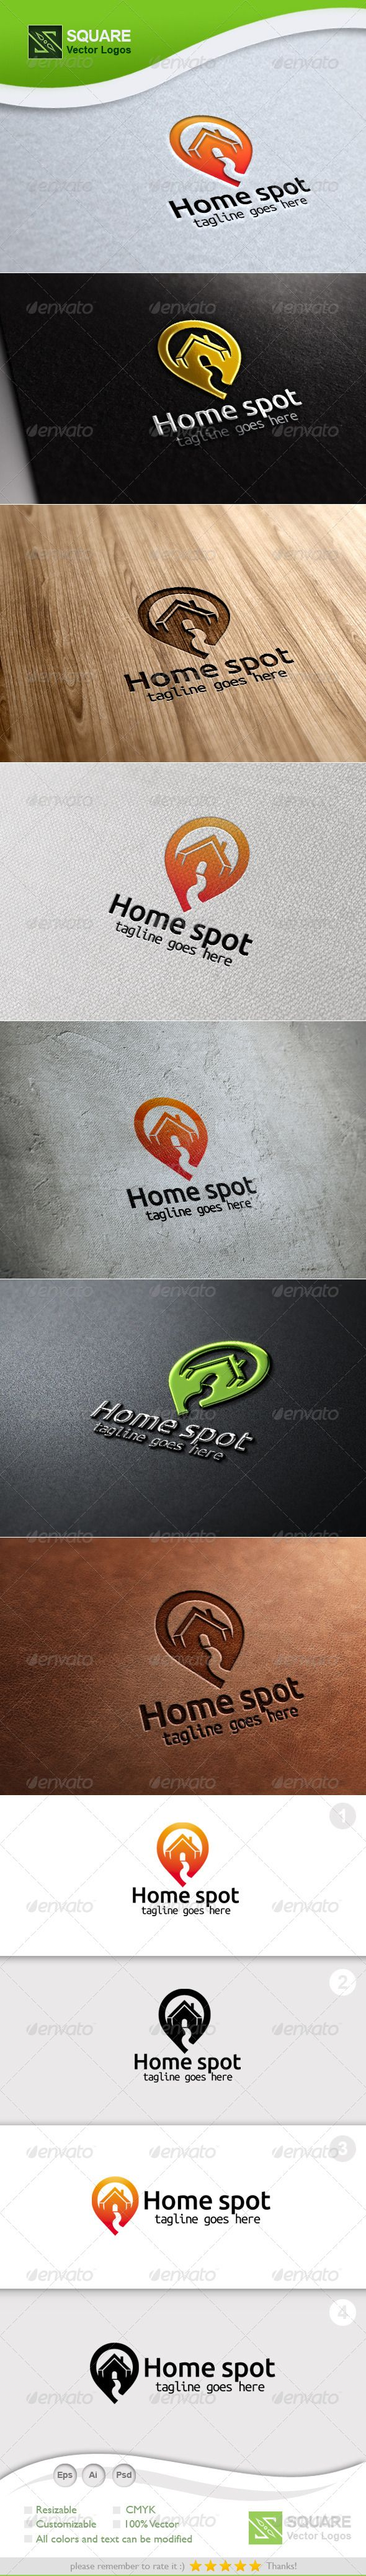 House, Locator Vector Logo Template #GraphicRiver File Description This is custom logo template. Illustrator (AI), Photoshop (PSD), Vector (EPS) logo files included in this download. You can customize to your own branding. All colors and text can be modified. It is suitable for place, locator, location, spot, builder, pin, map, symbol, apartment, latitude, media, gps, house, home, real estate, building related logos. FEATURES The Logo Is 100% Vector 100% Customizable Fully Layered Logo…